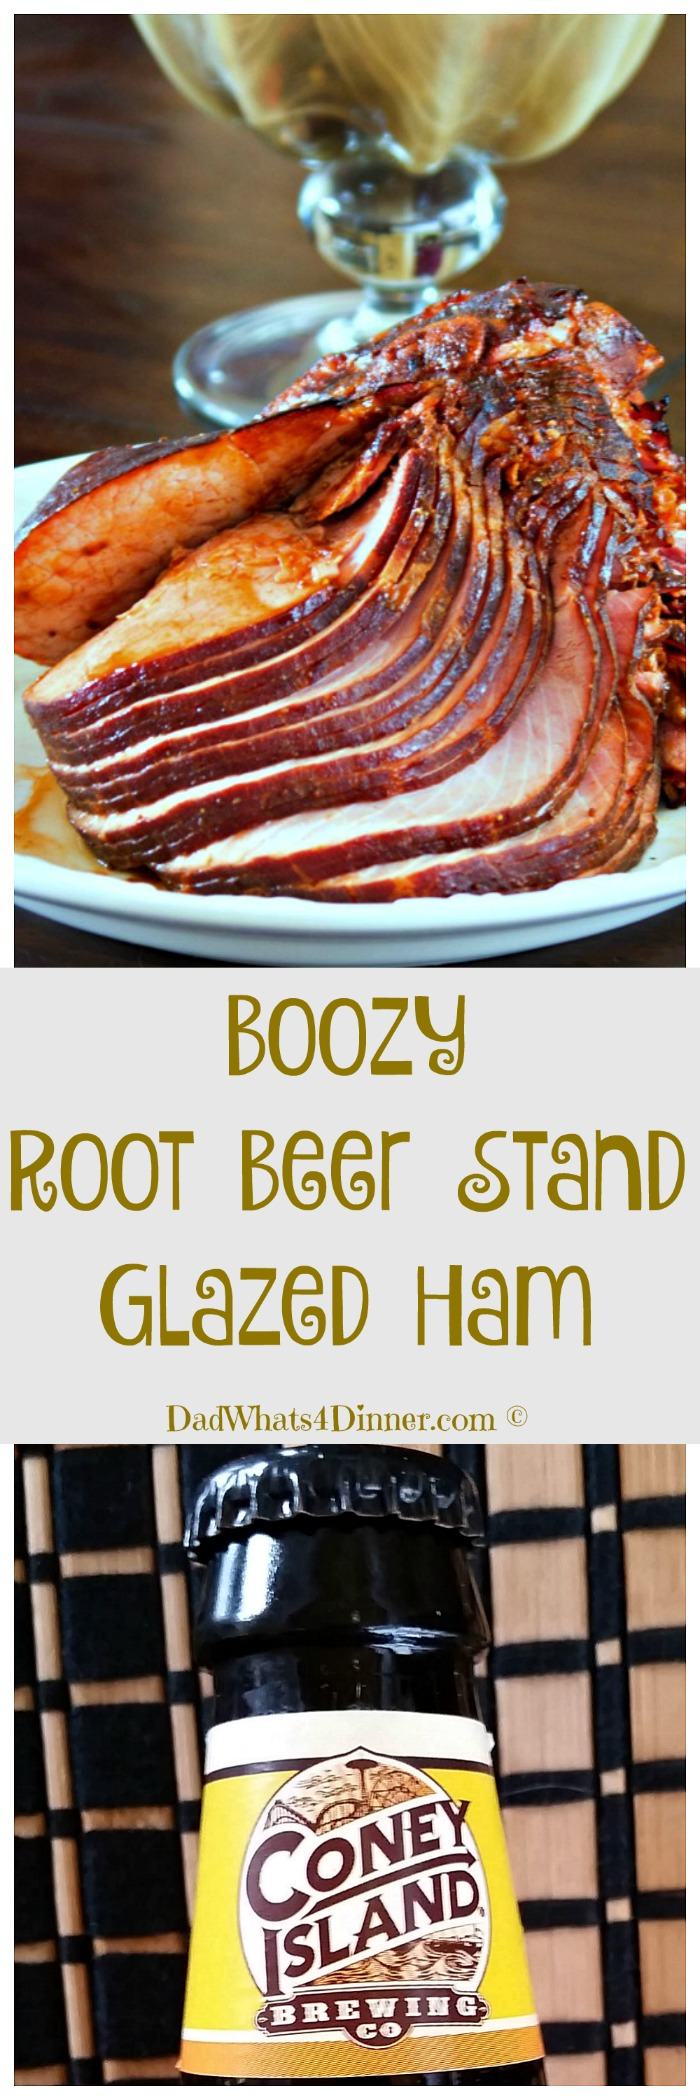 Boozy Root Beer Stand Glazed Ham may not be the most politically correct recipe, but the glaze is so good and all of the alcohol burns off.